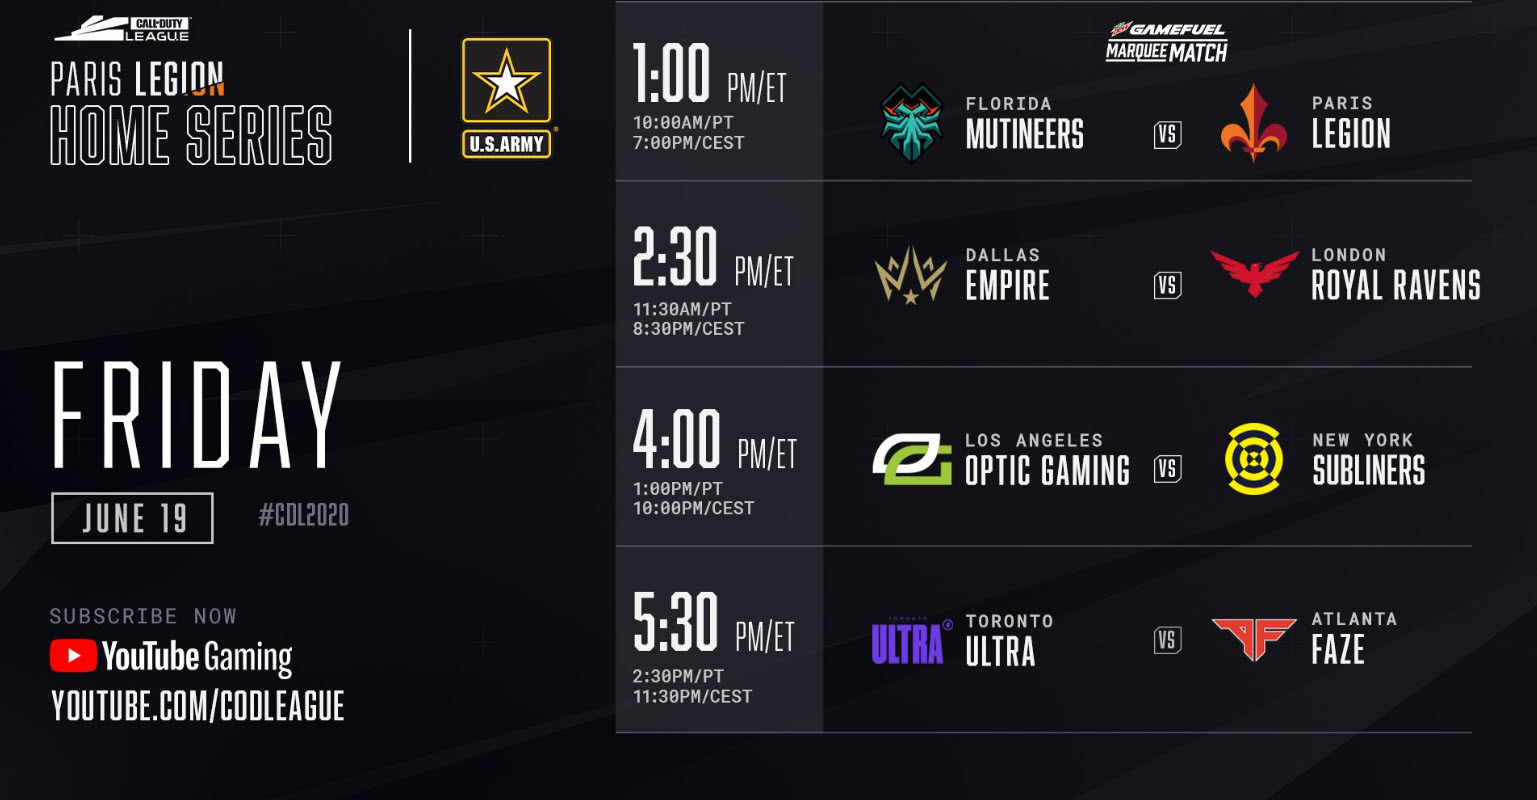 Call of Duty Paris Legion Home Series Friday Schedule 2020